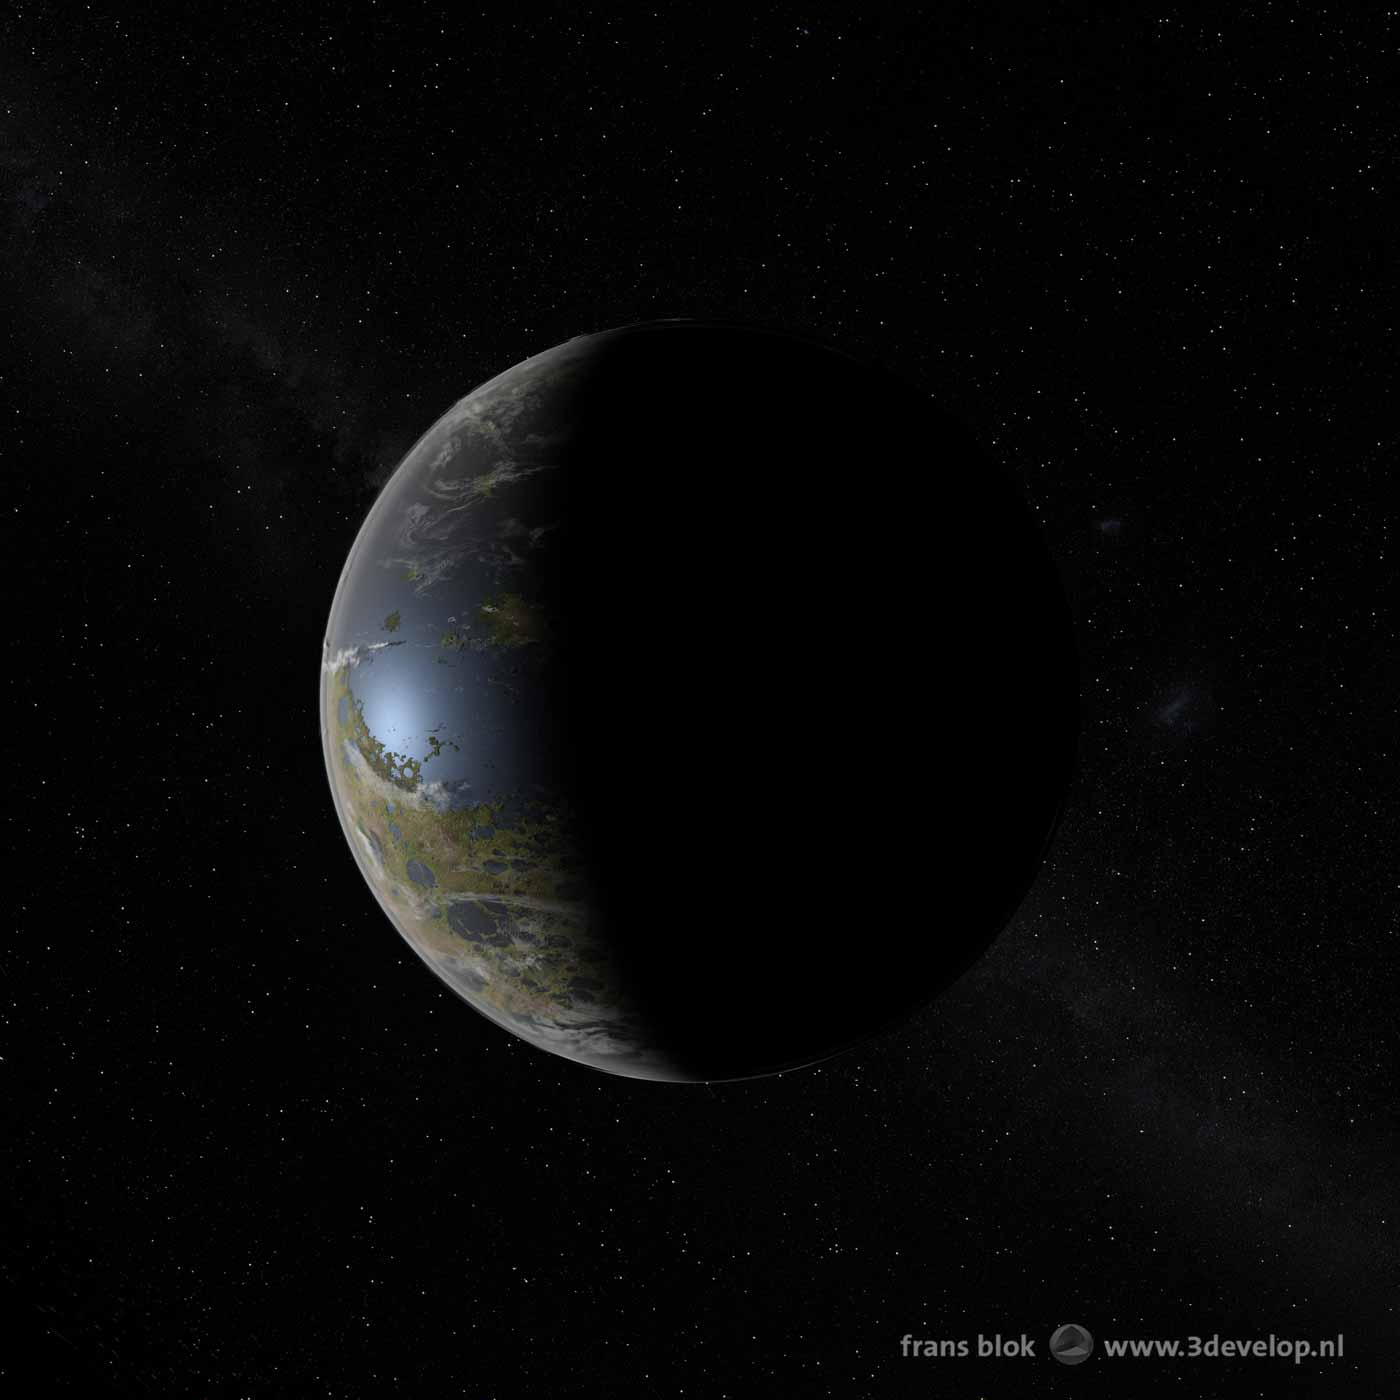 Artist impression of a celestial body with seas and lakes, clouds and forests, which on closer inspection turns out to be earth's Moon, terraformed